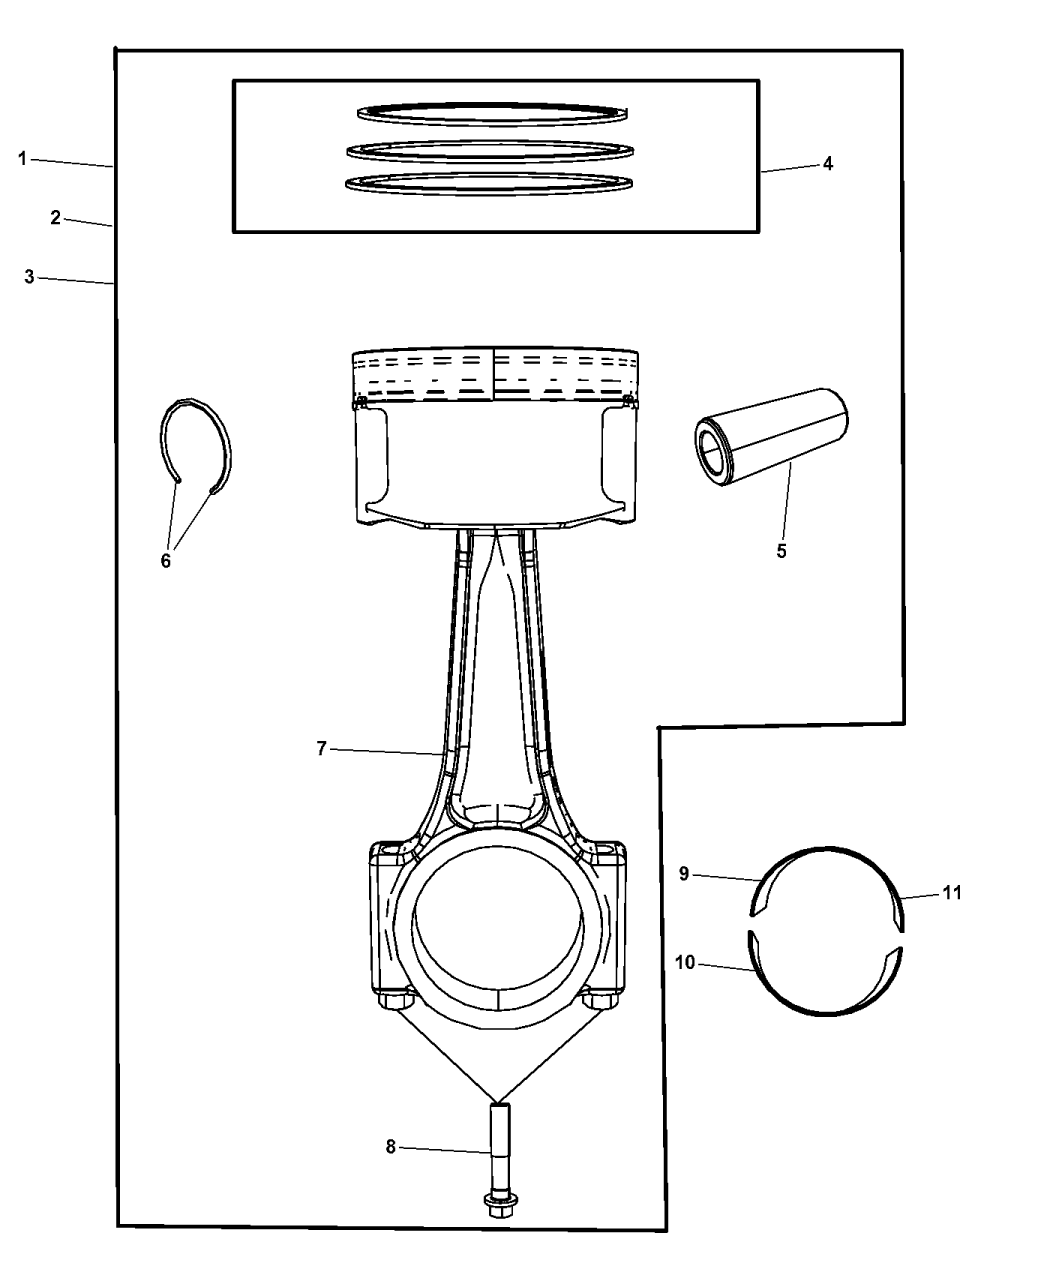 2009 Dodge Journey Pistons, Piston Rings, Connecting Rods & Connecting Rod  Bearing - Thumbnail